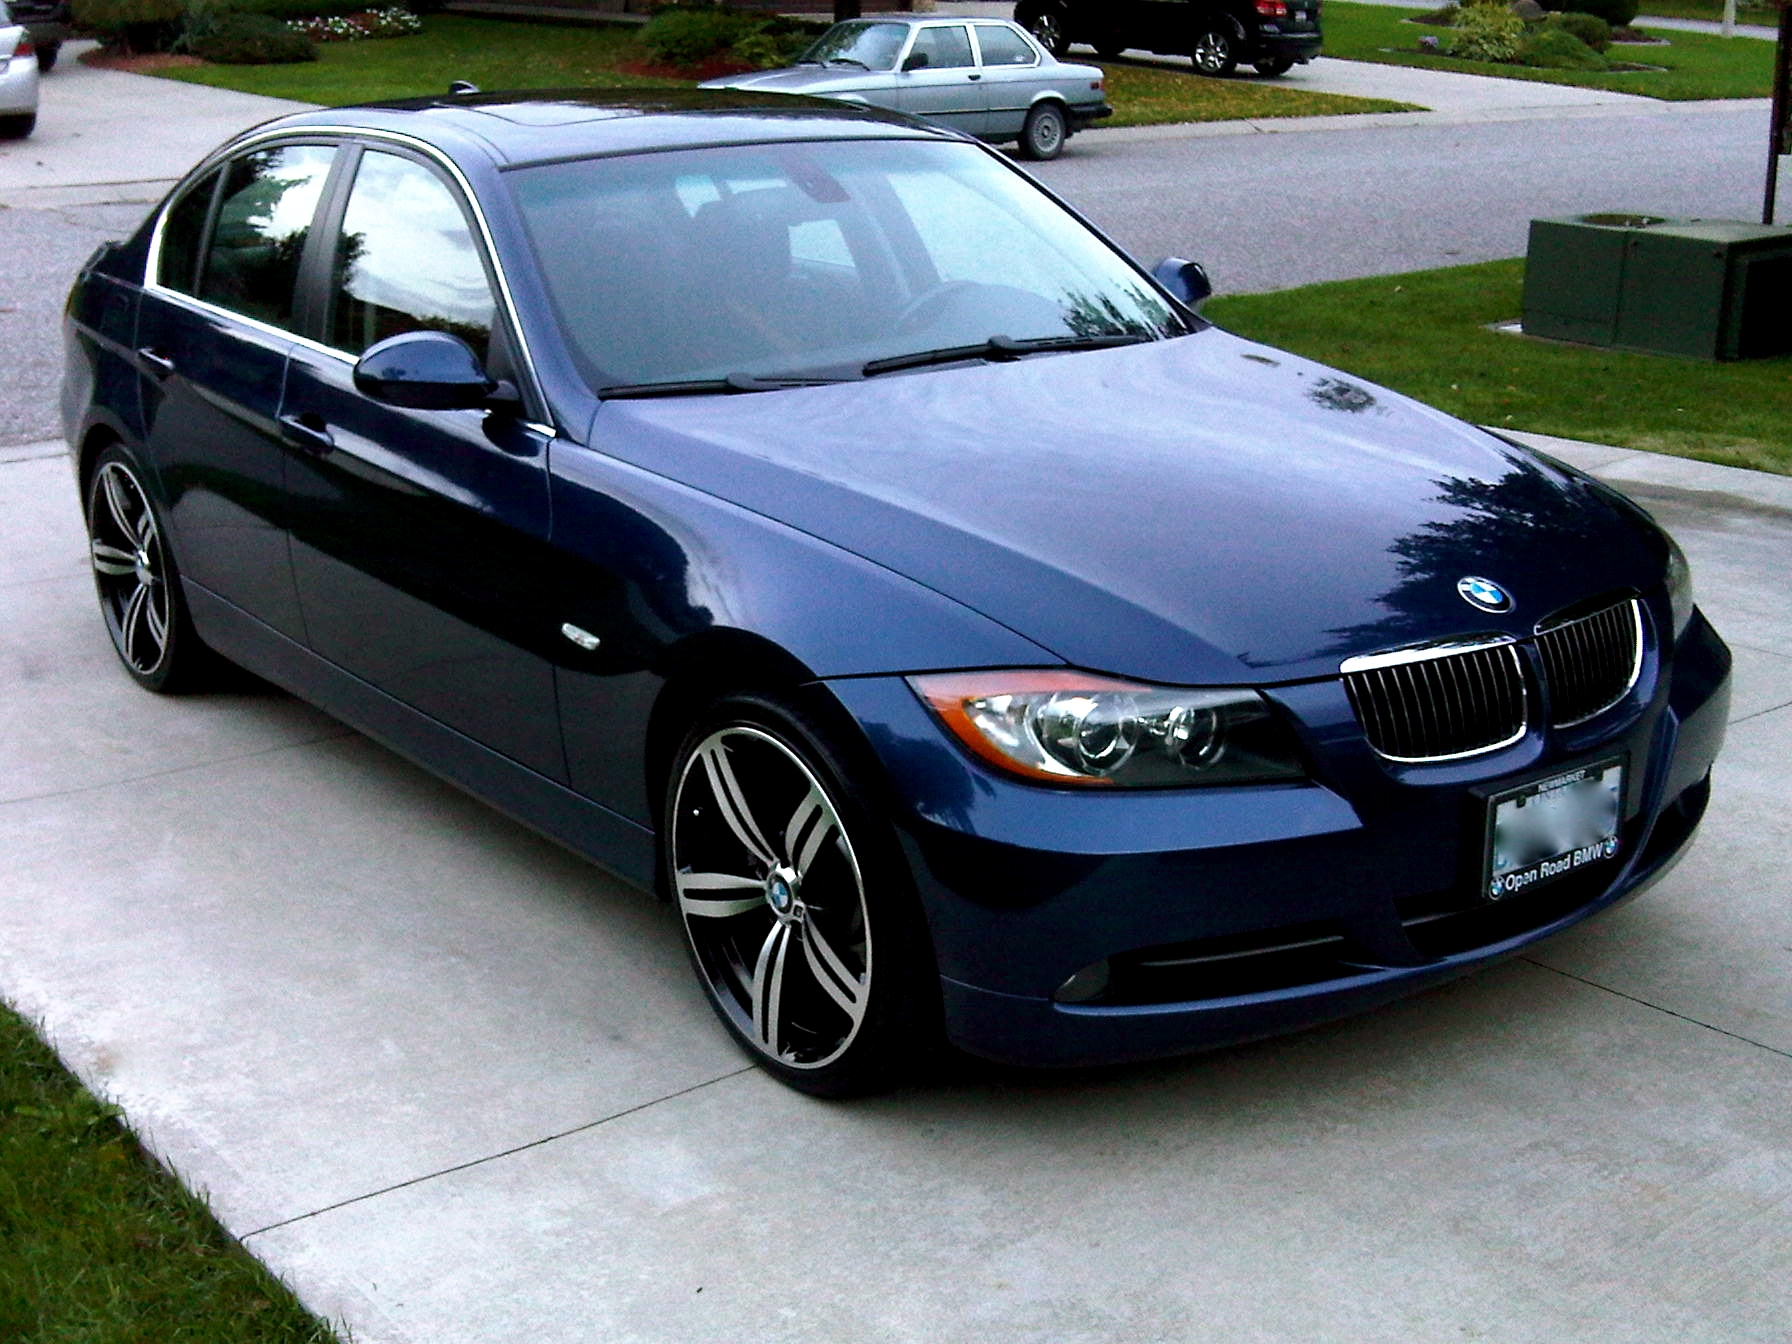 kilsic 2006 bmw 3 series330i sedan 4d specs photos modification info at cardomain. Black Bedroom Furniture Sets. Home Design Ideas